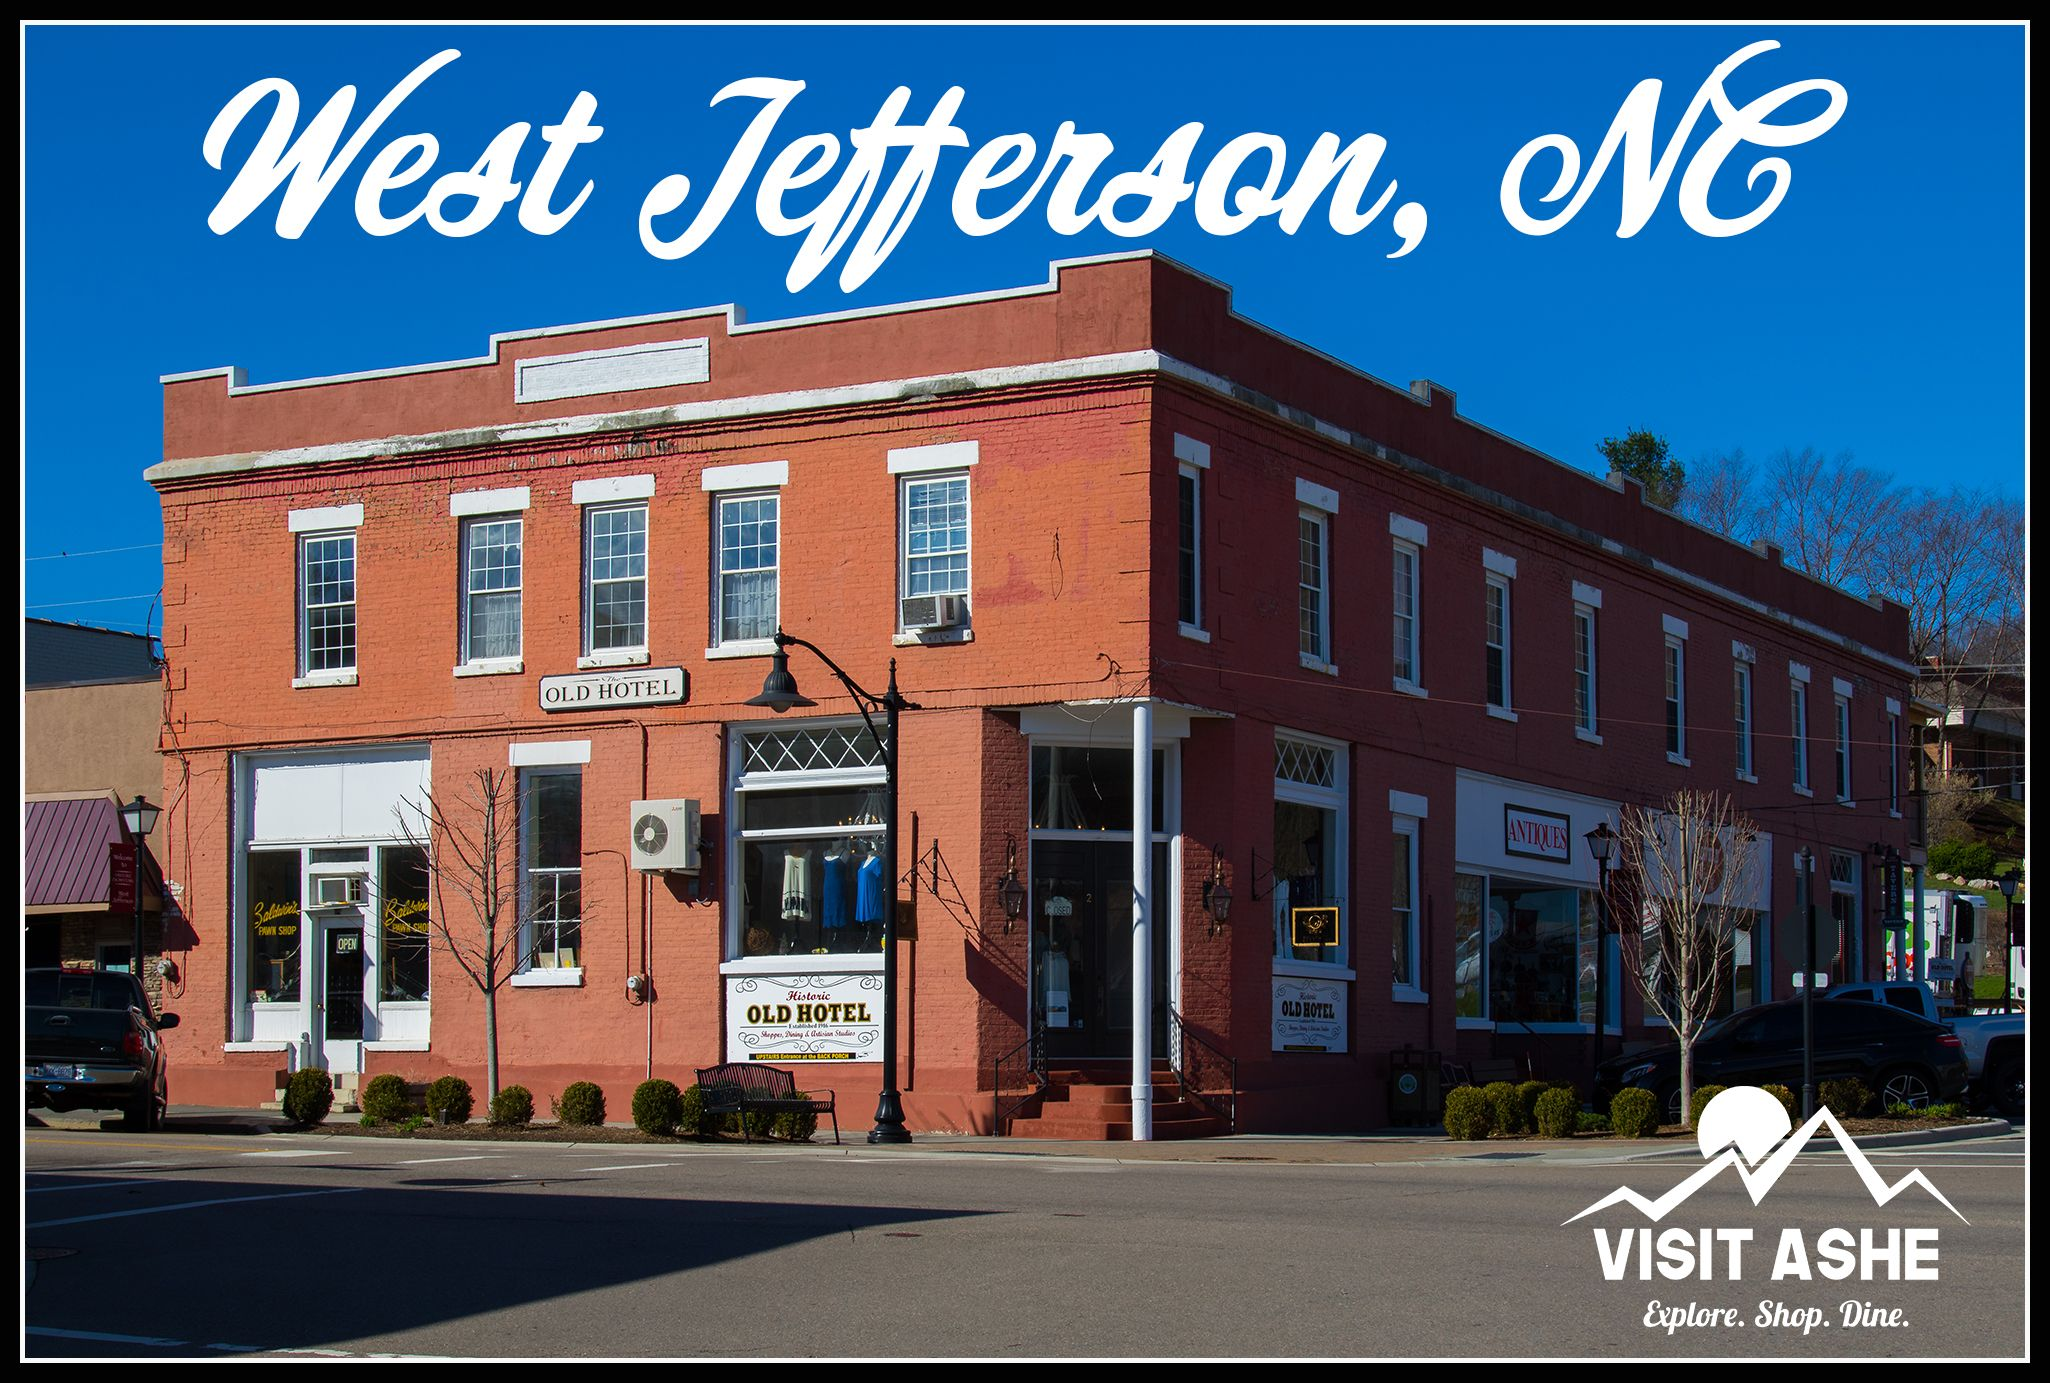 West Jefferson Nc Is A Fantastic Place For Weekend Getaway Amazing Ping